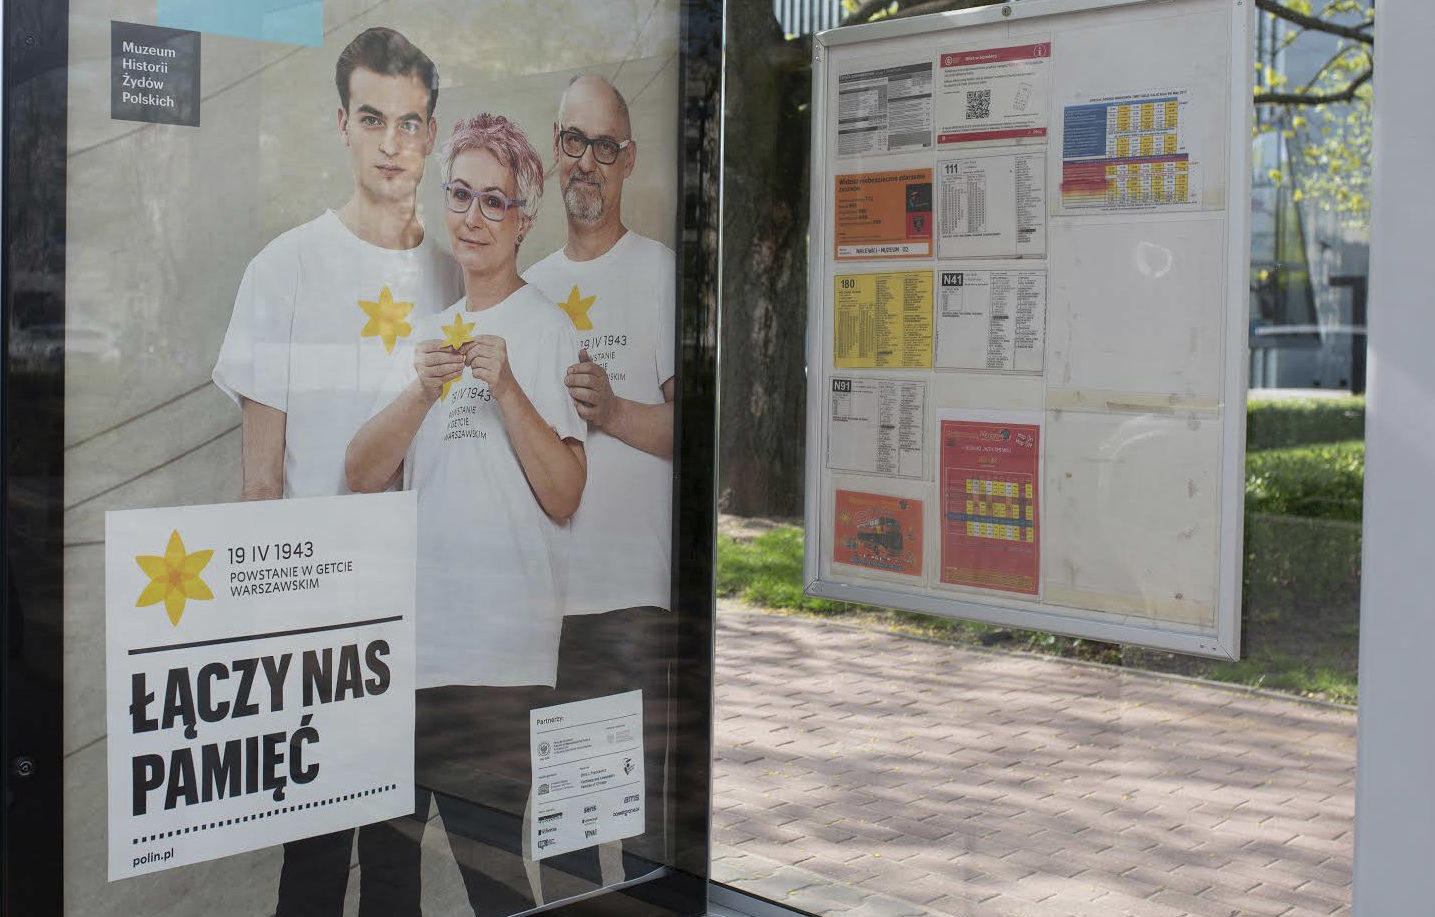 A bus stop ad in Warsaw for the commemoration of the 75th anniversary of the Warsaw Ghetto Uprising (Photo/Shana Penn)